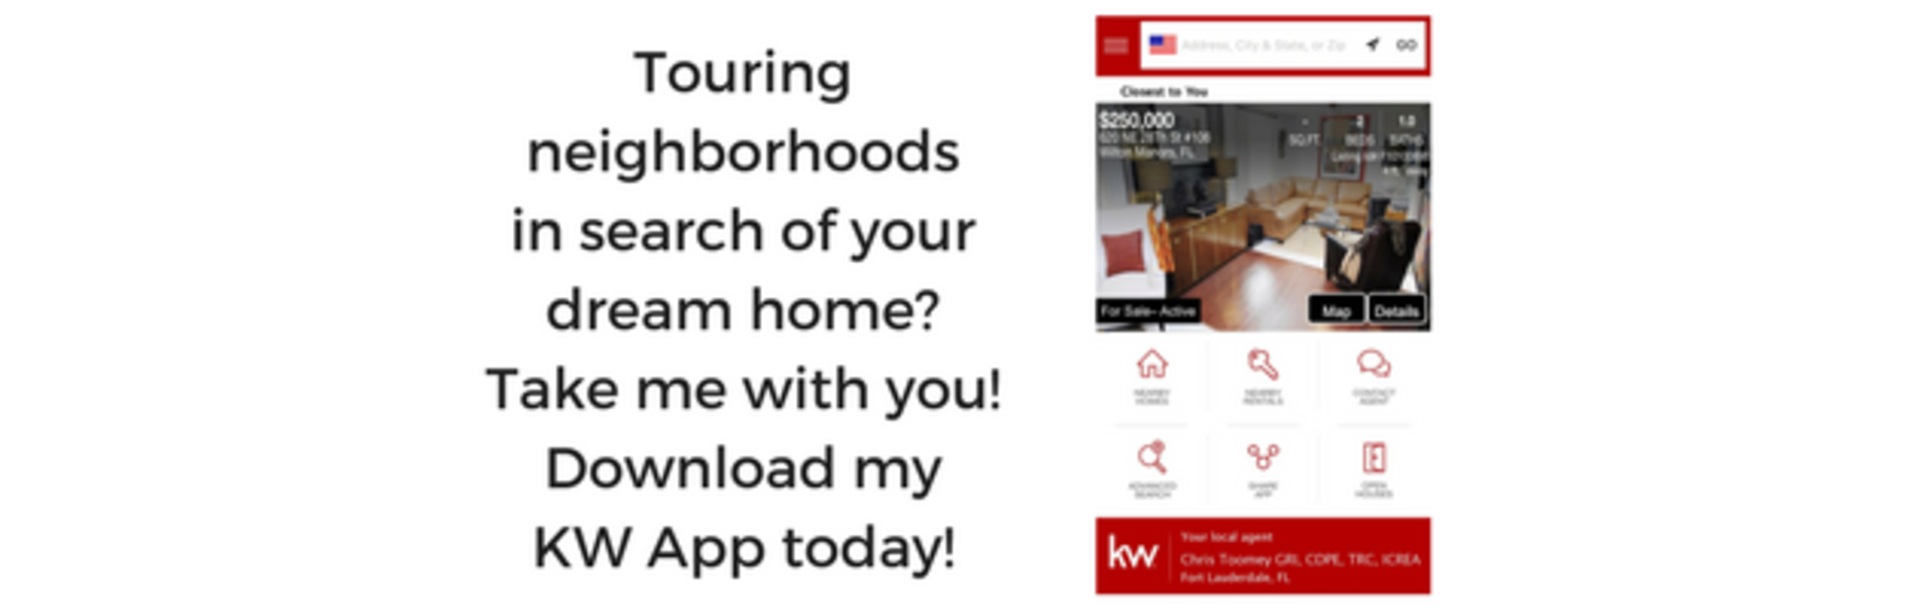 Touring neighborhoods in search of your dream home? Take me with you!